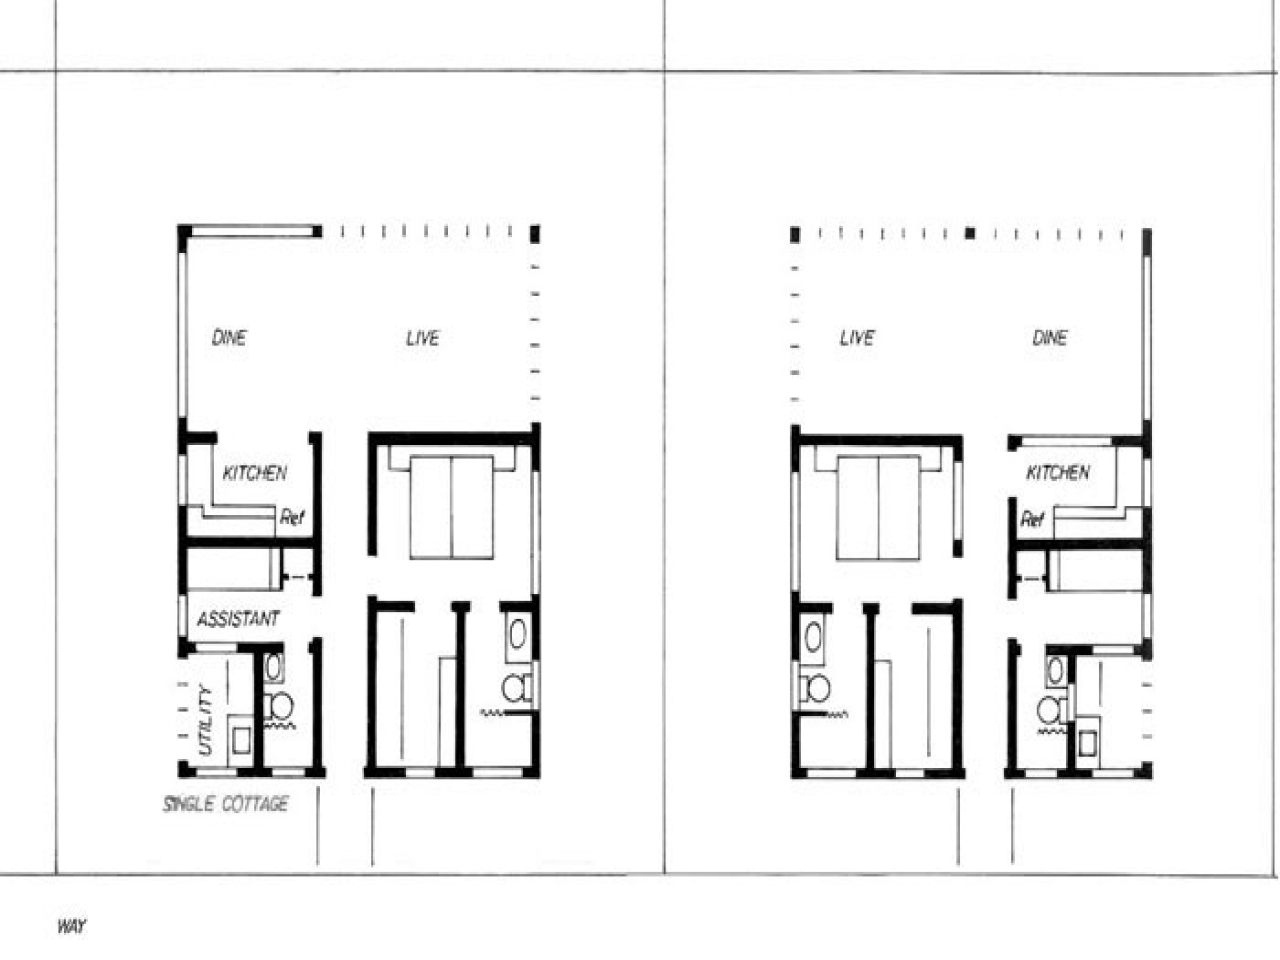 Cottage cabin bedroom 1 bedroom cottage house plans one bedroom cottage plans - Www one bedroom cottage floor plans ...